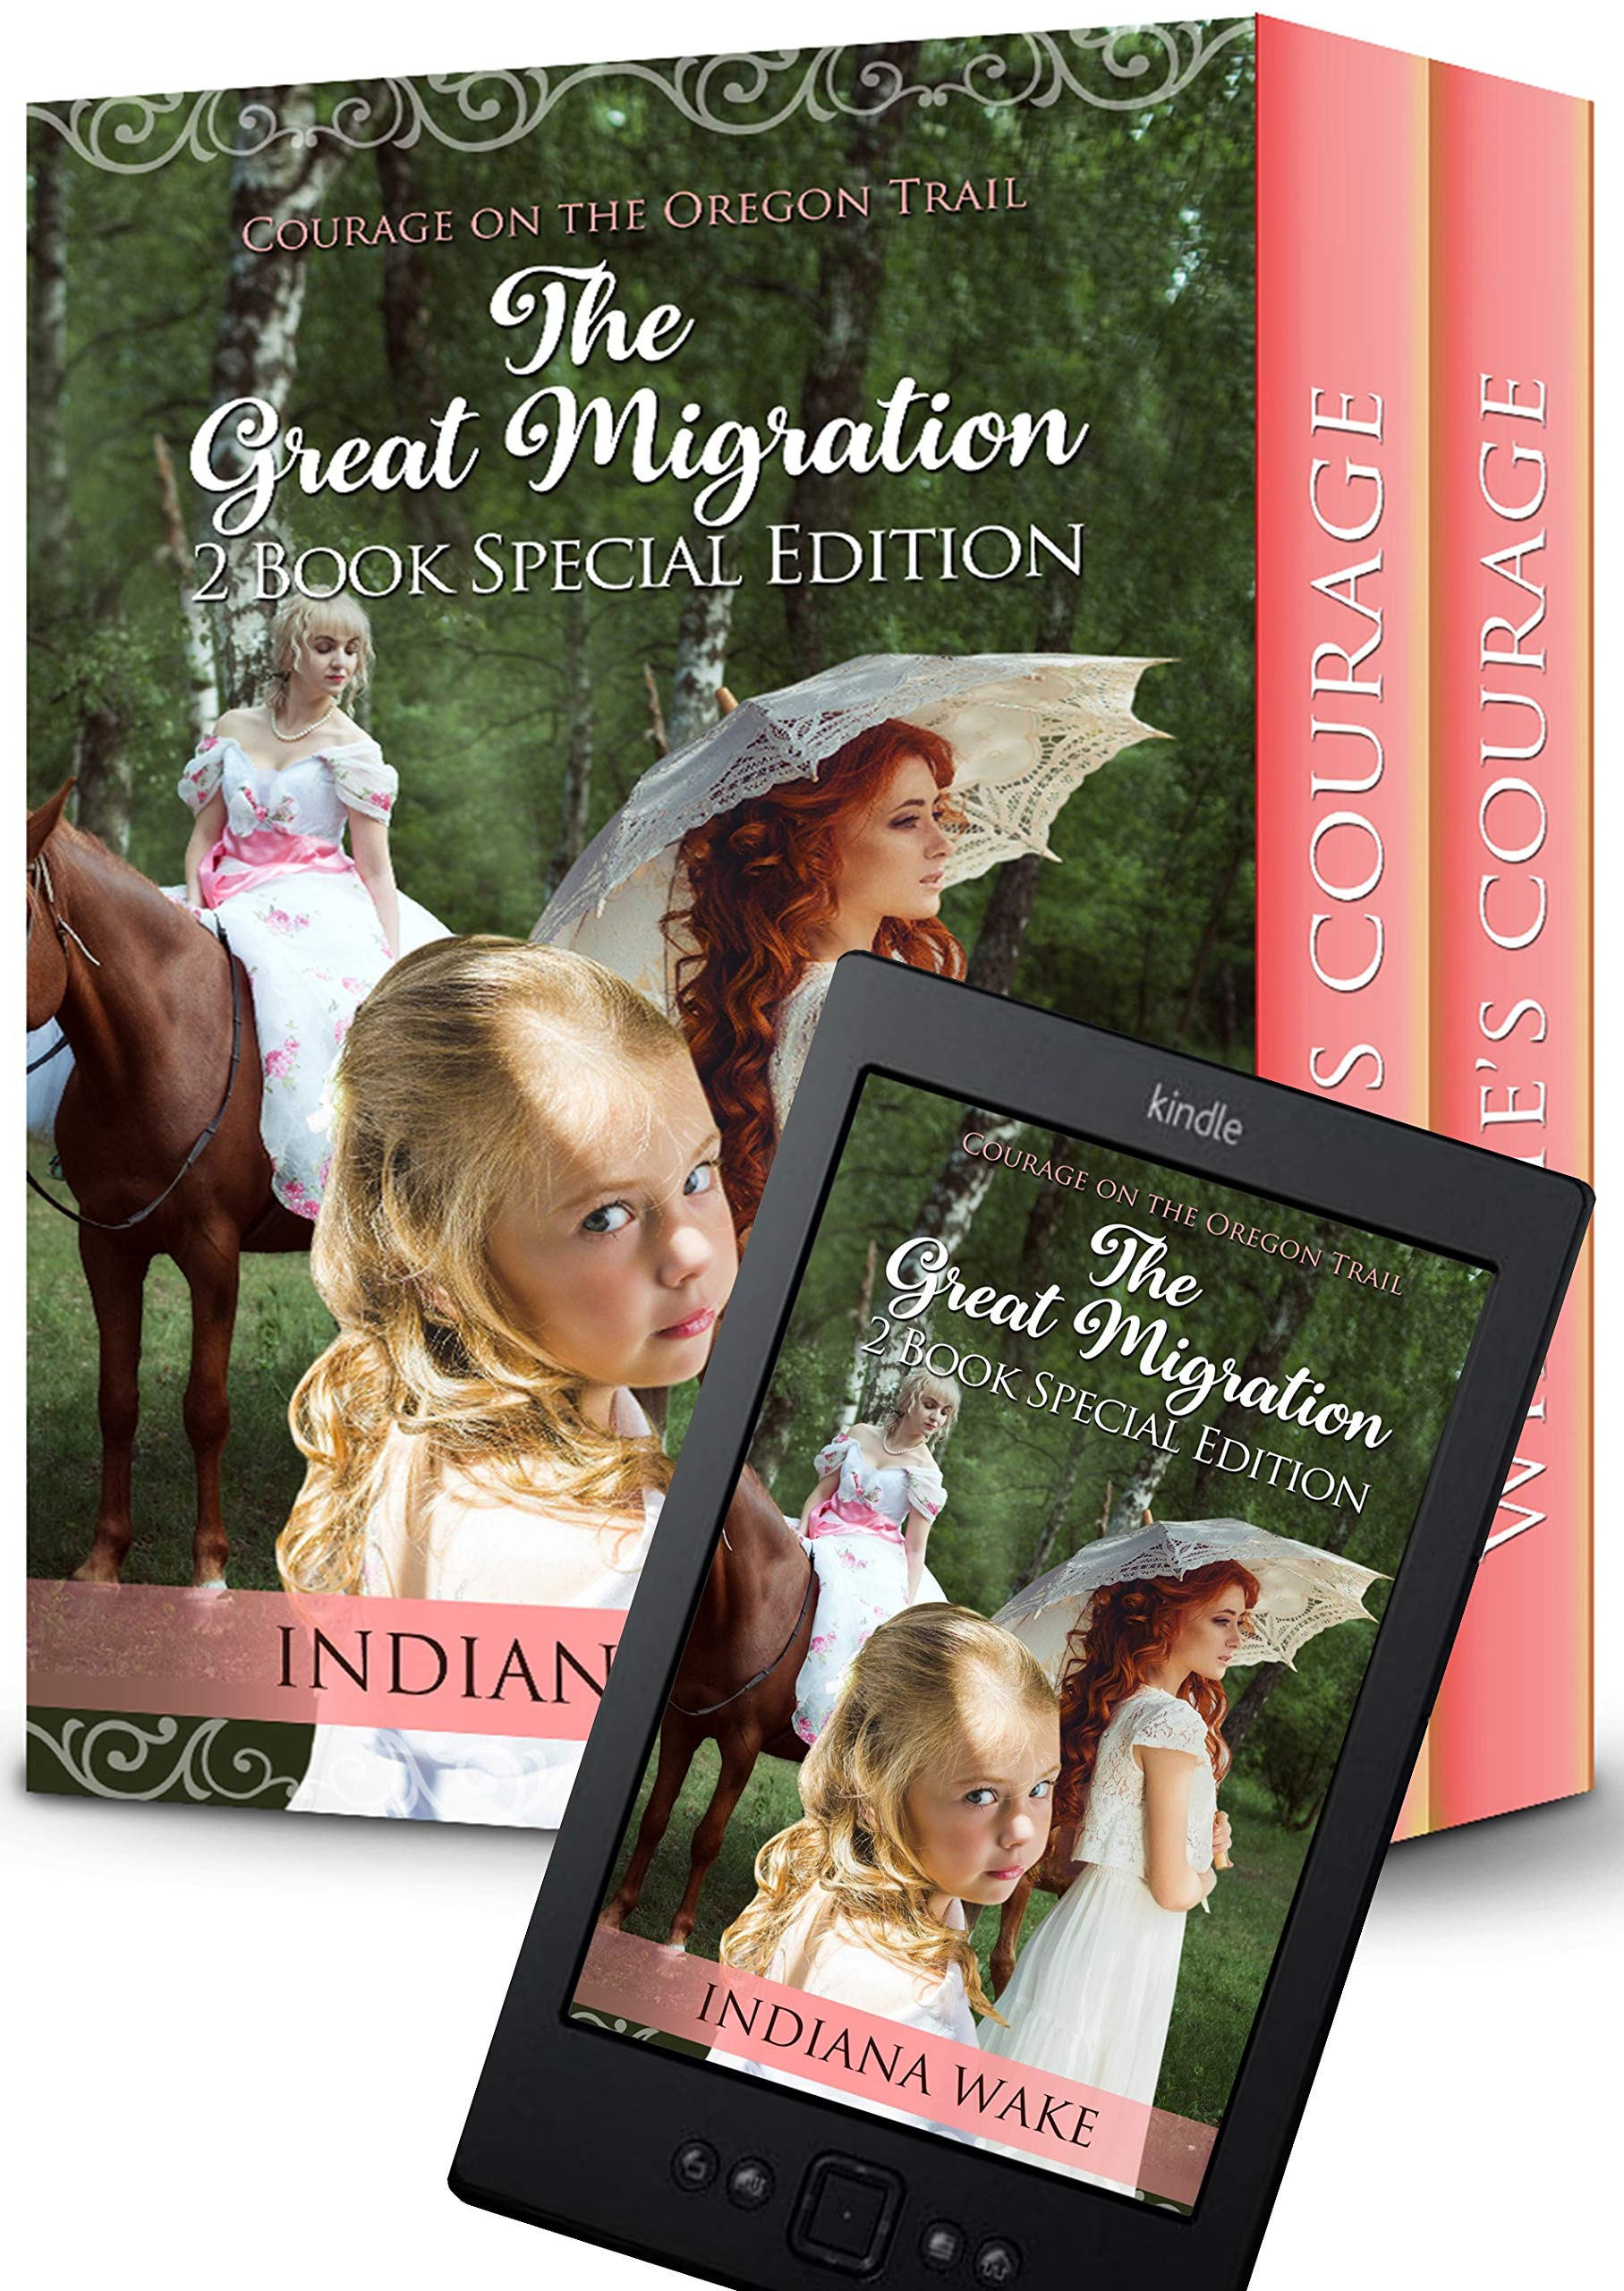 Courage on the Oregon Trail: The Great Migration 2 Book Special Edition: Grace's Courage and Winnies Courage